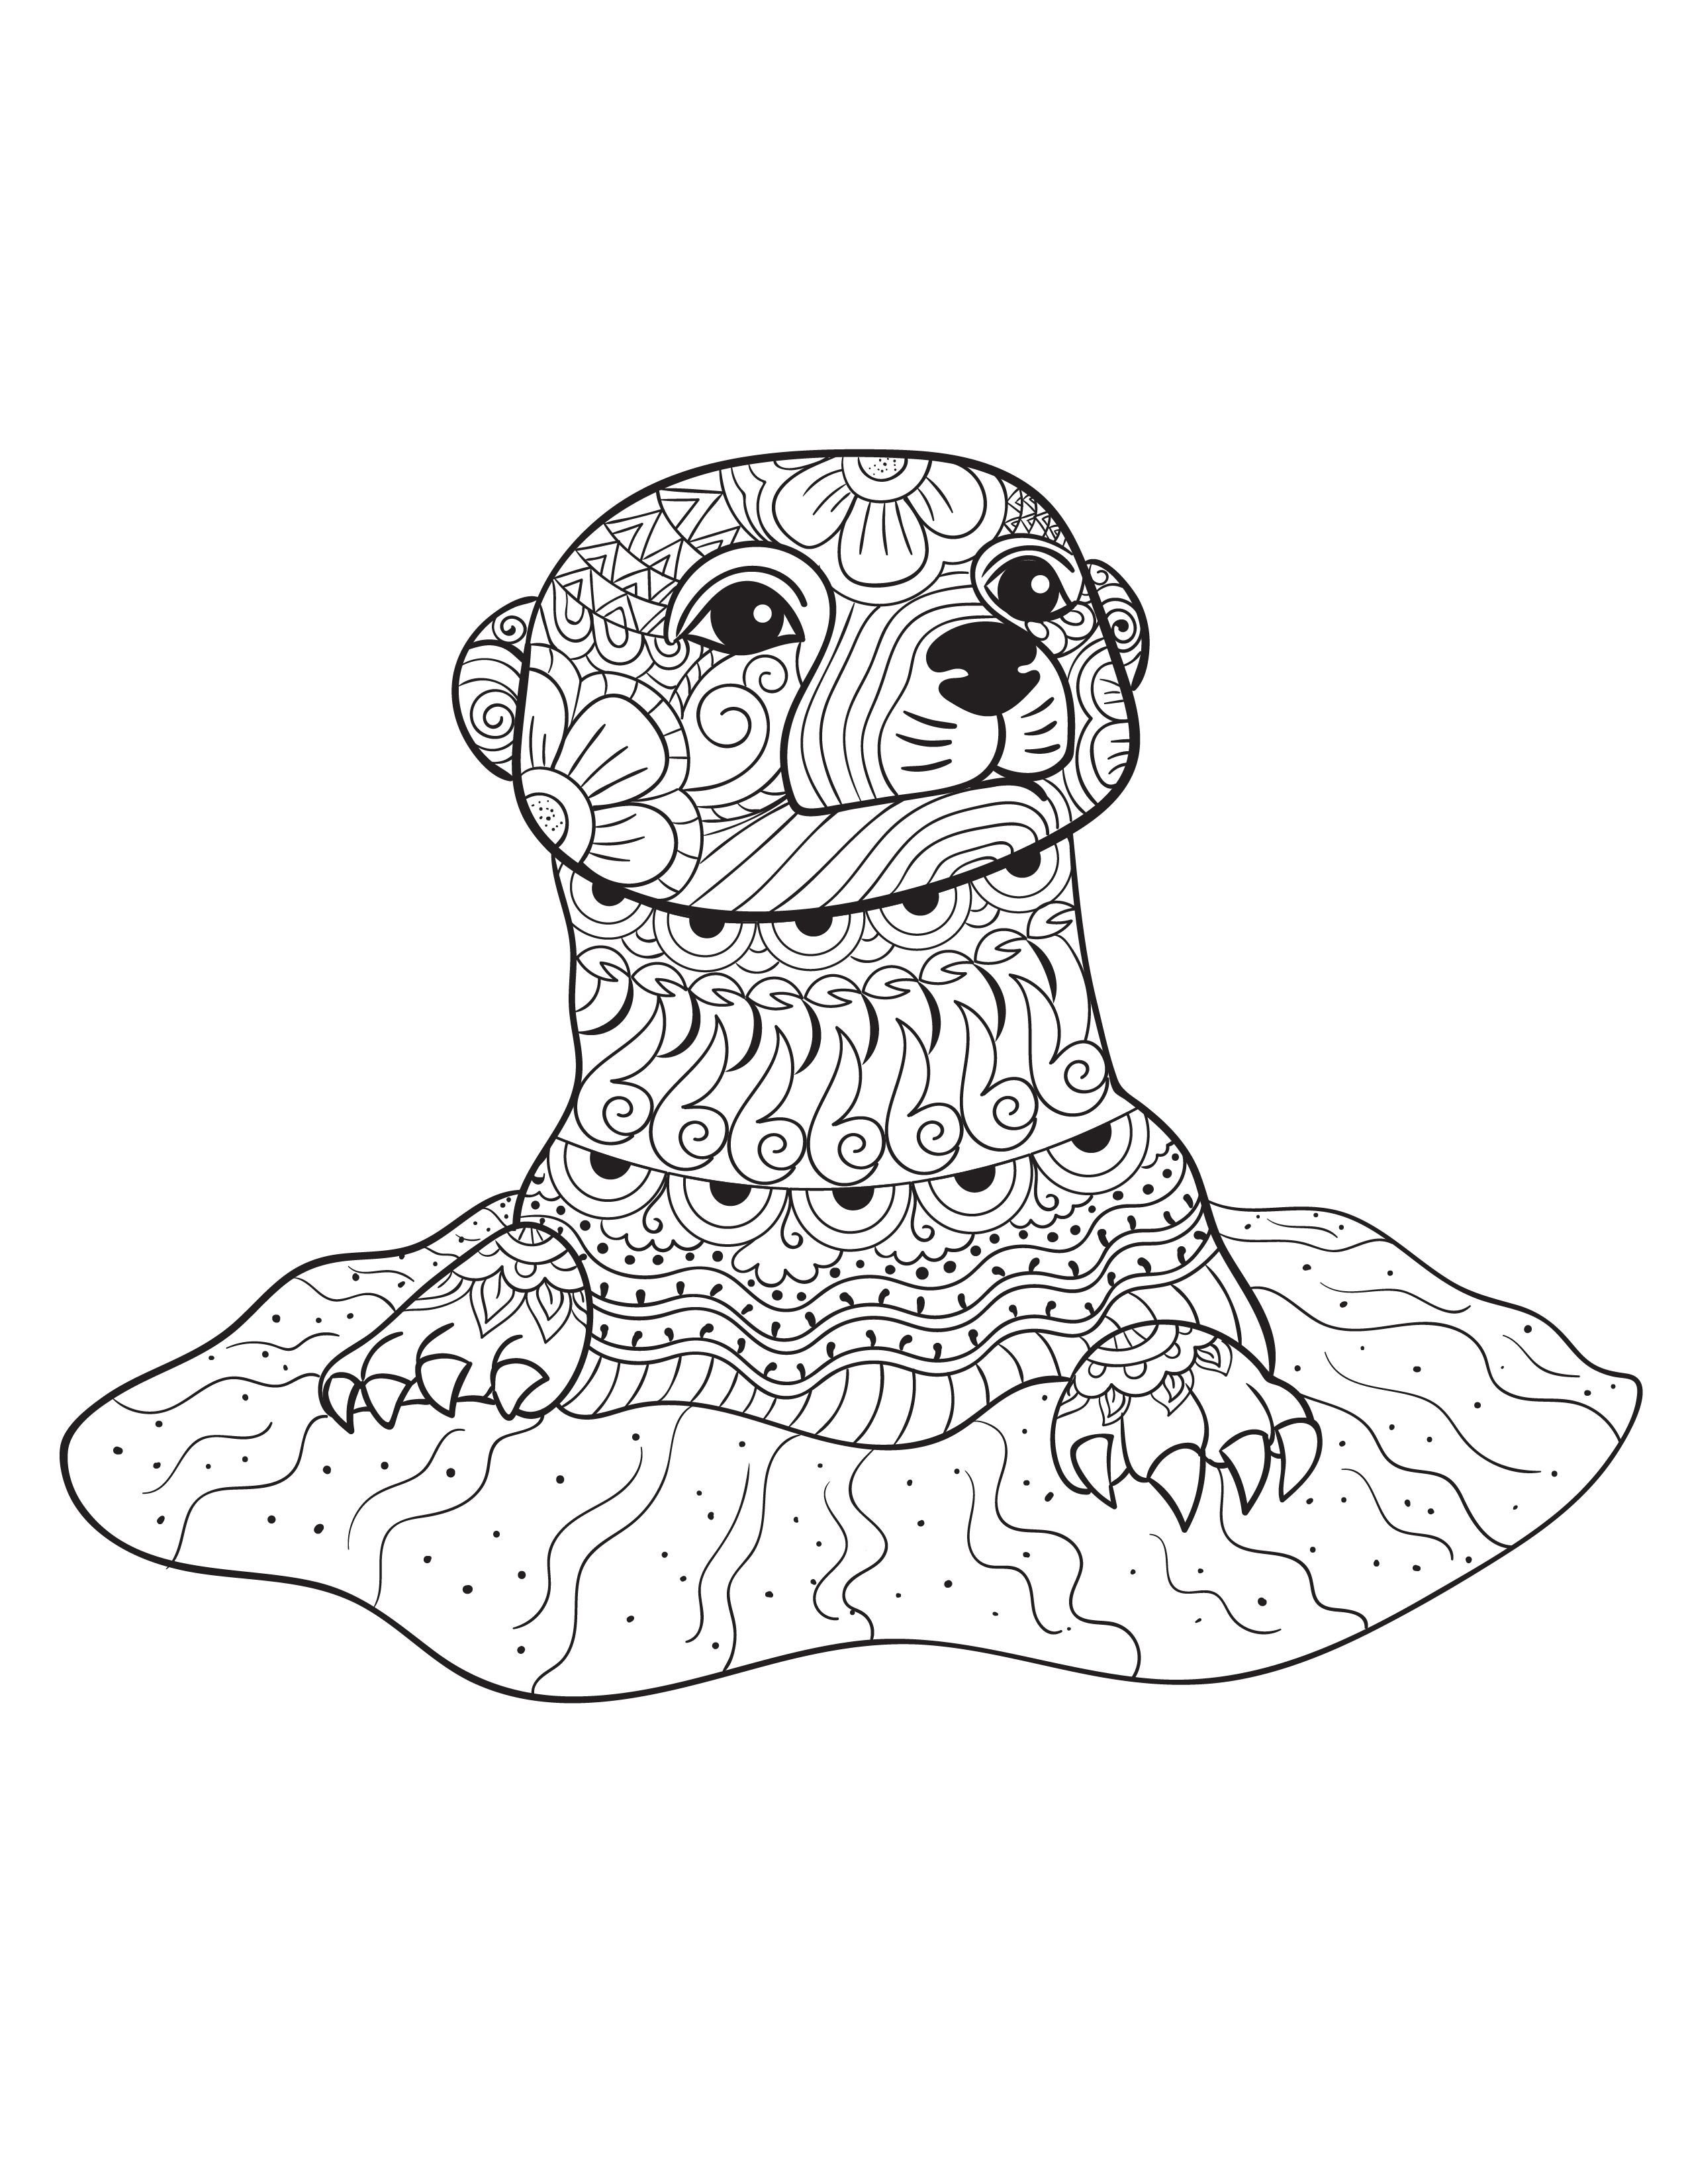 An Otter From Animals An Adult Coloring Book Which Is Part Of A